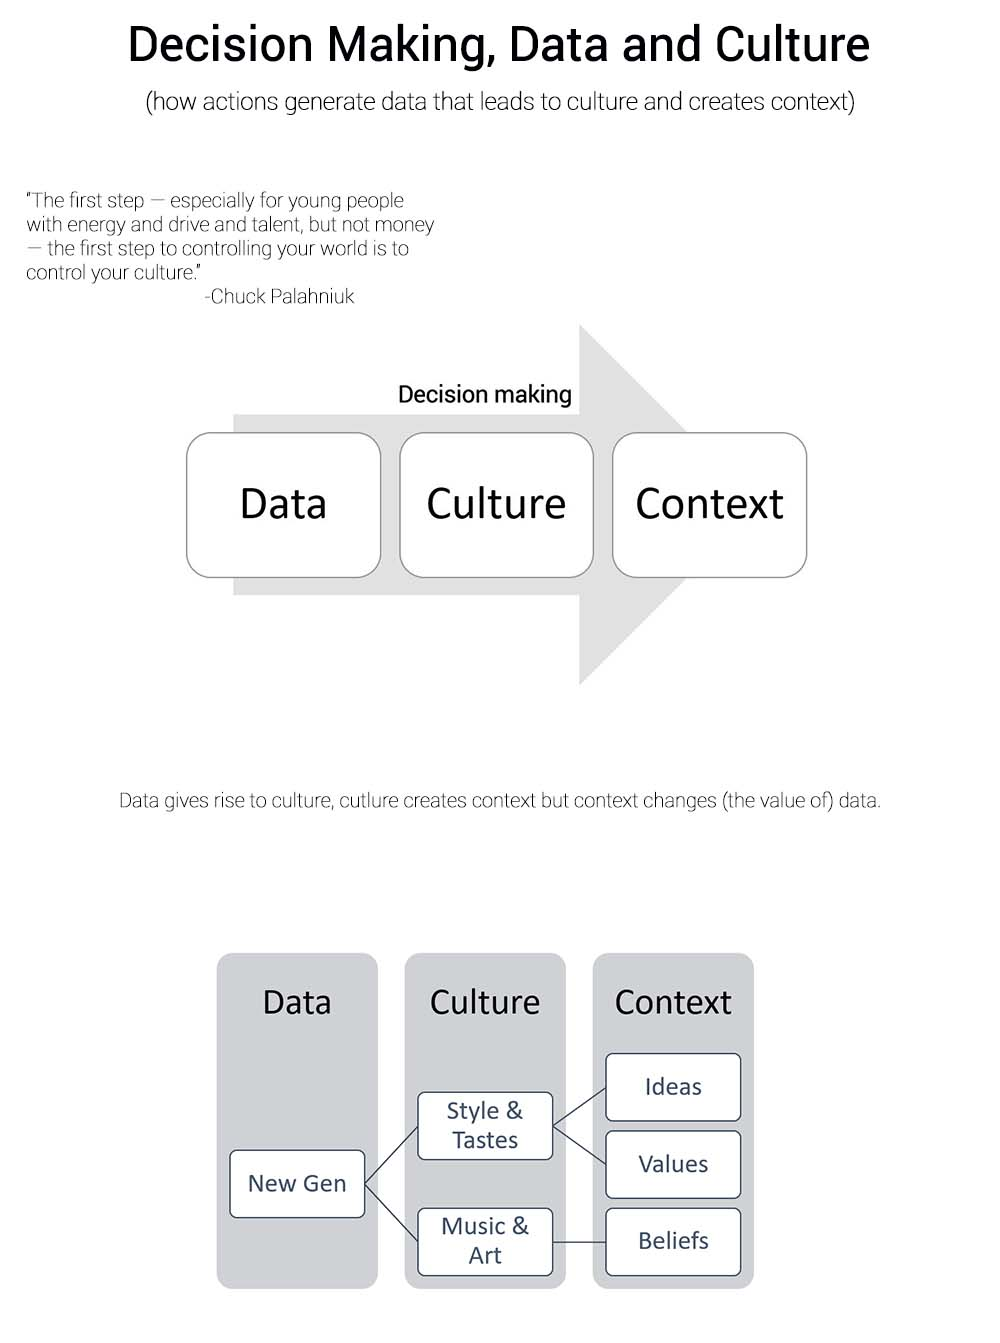 How Data generates Culture which then creates Context that changes the value we ascribe to data